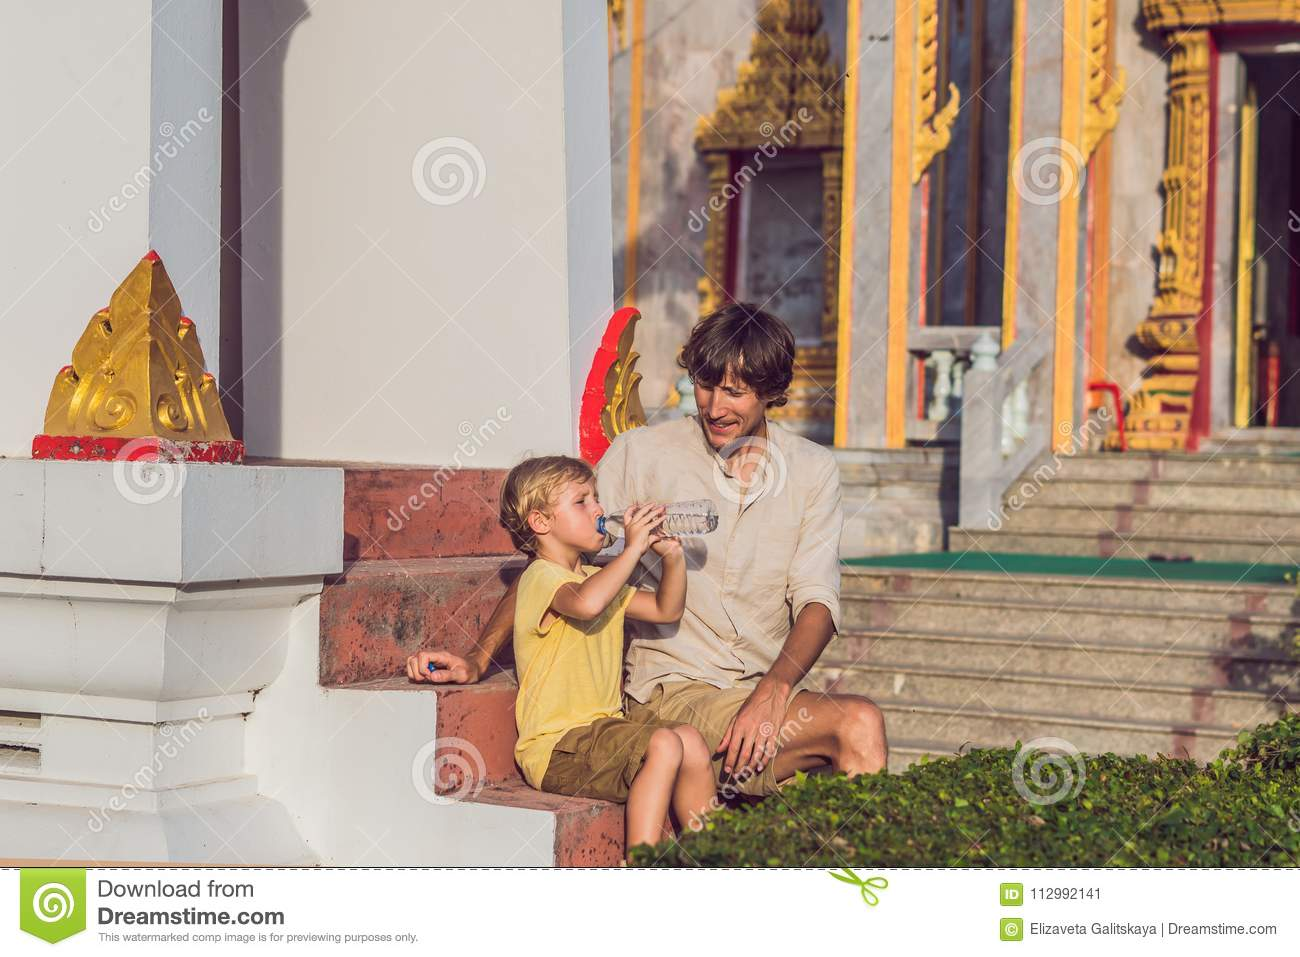 Father and son tourists look at Wat Chalong is the most important temple of Phuket